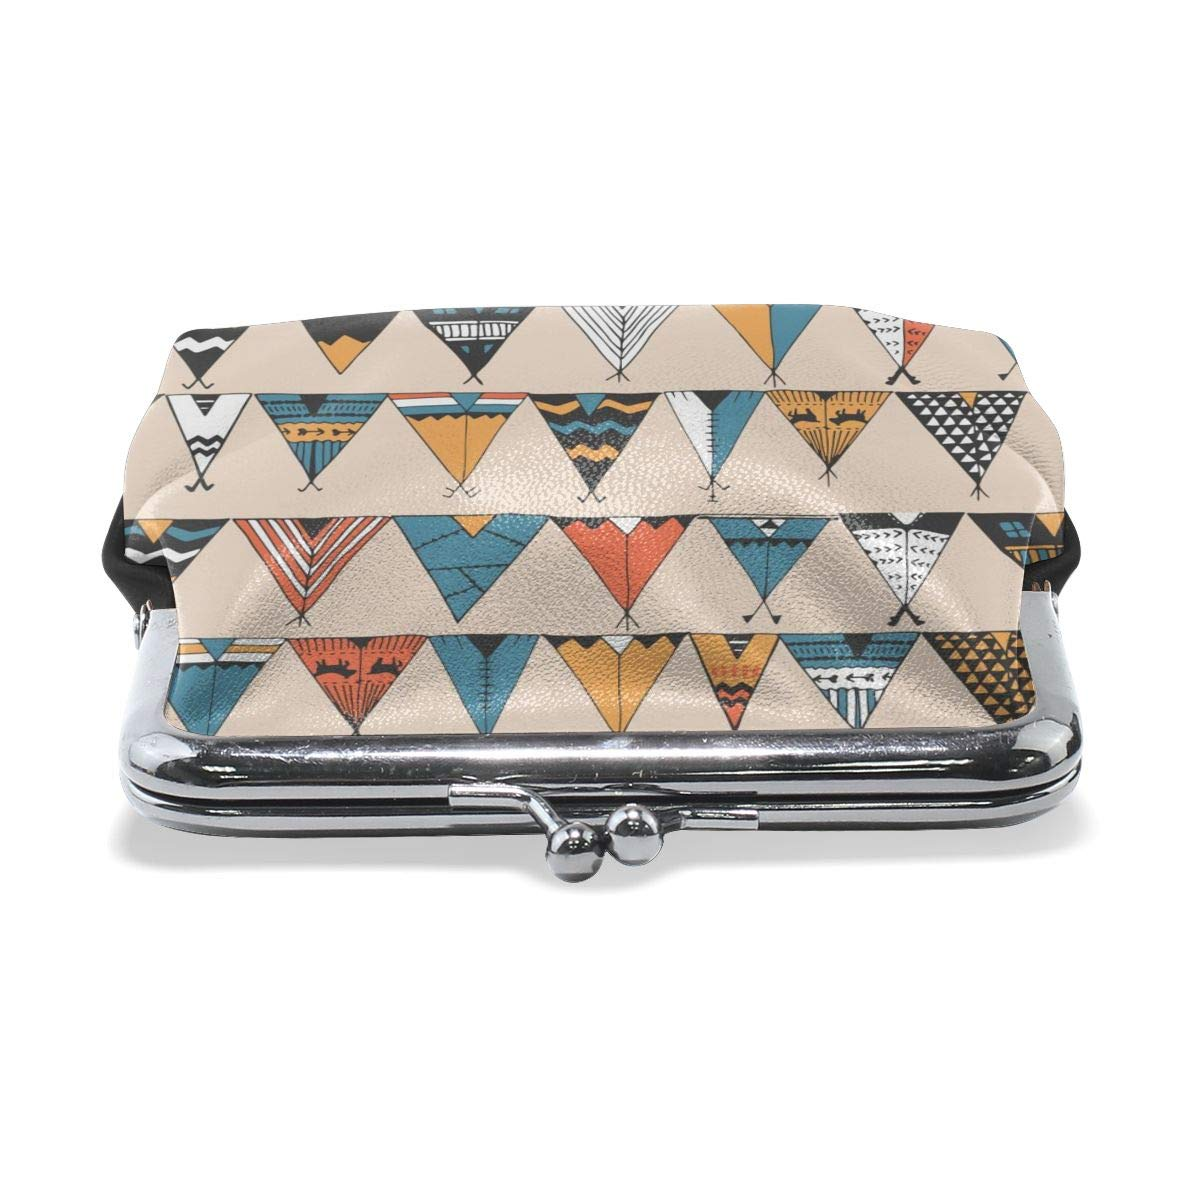 Architd Customized Cute Retro Coin Purse Personality Metal Lock Purse Girl Kiss And Buckle Change Purse Ladys HandbagTents Of Various Colors